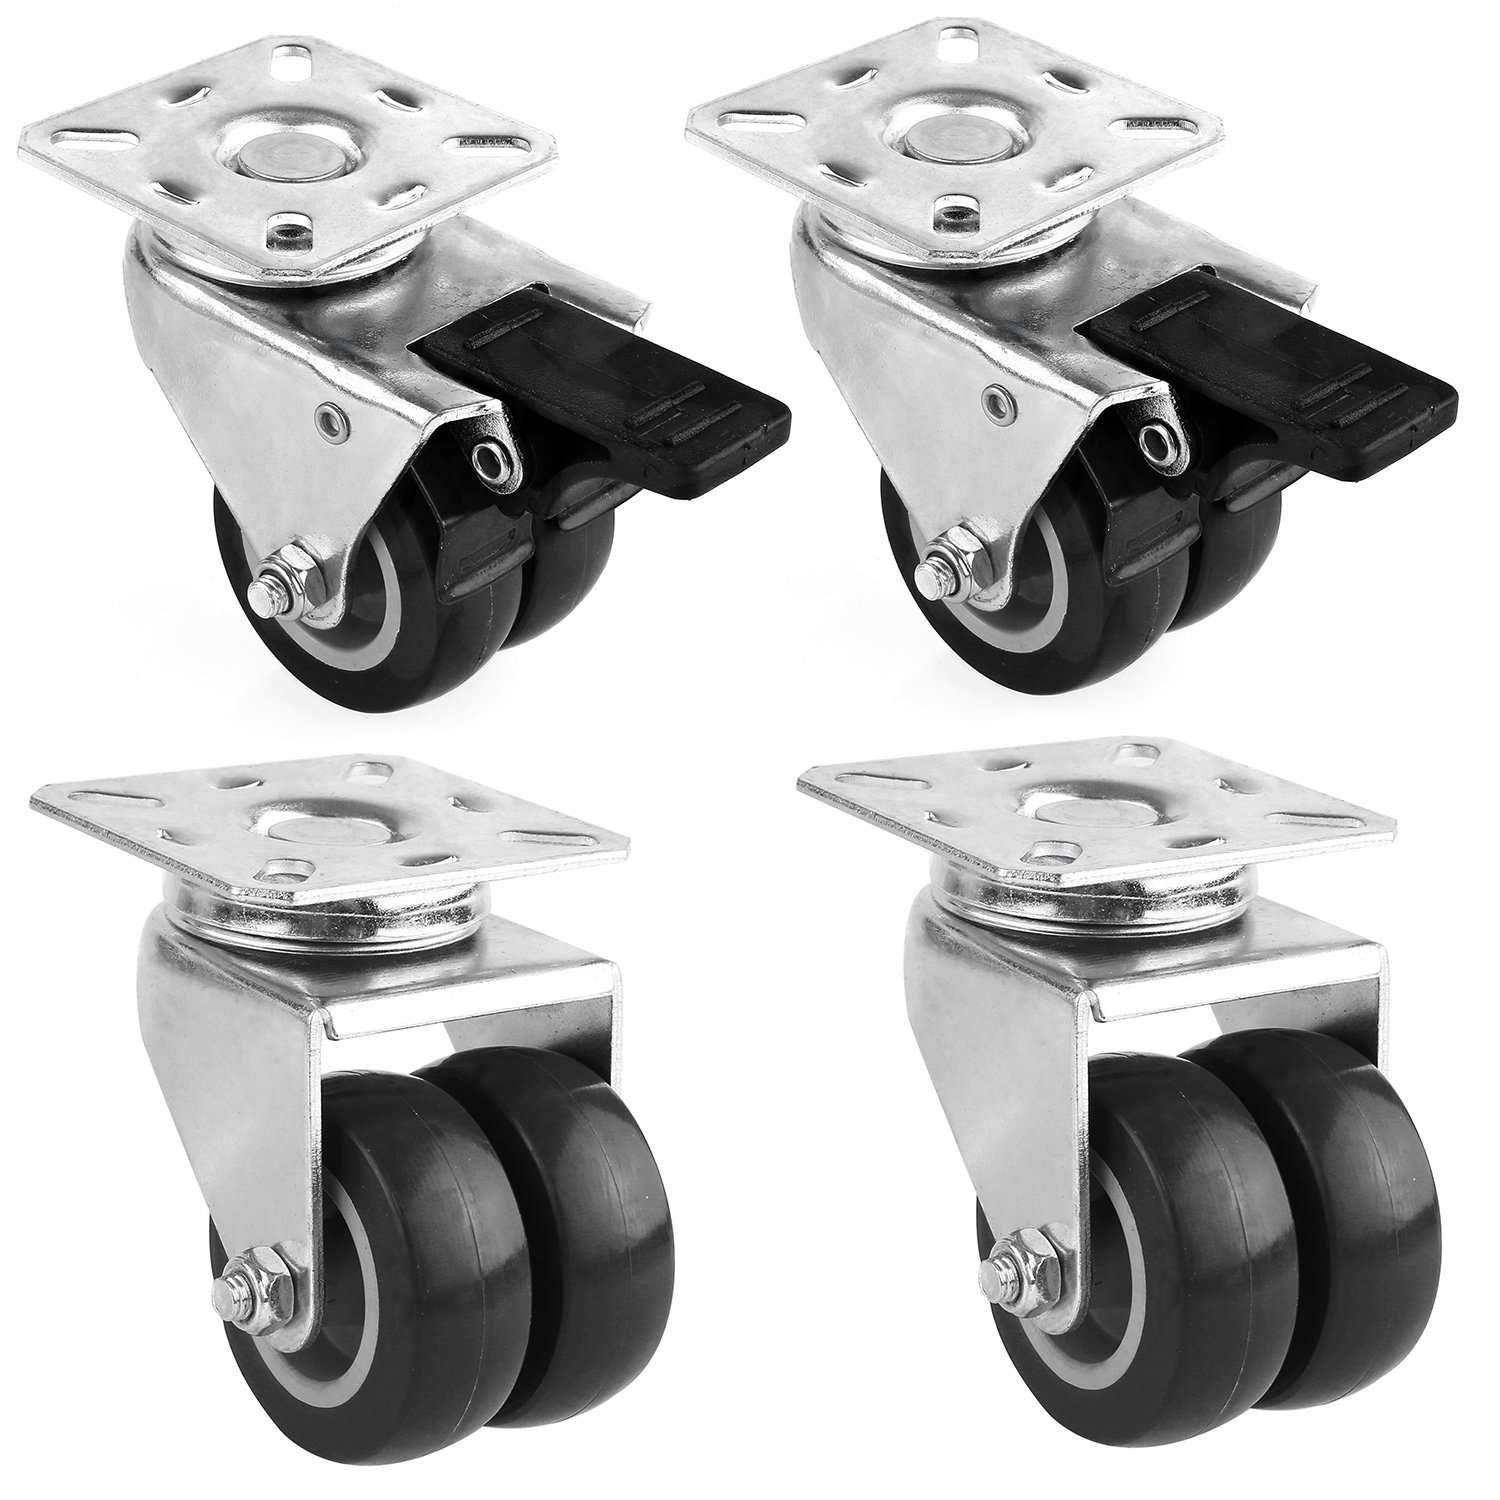 "FEMOR 4 Pack 2"" Swivel Caster Wheels, Heavy Duty Twin Wheels with 360 Degree Top Plate, Replacement Wheels for Carts, Furniture, Dolly, Workbench, Trolley by femor"